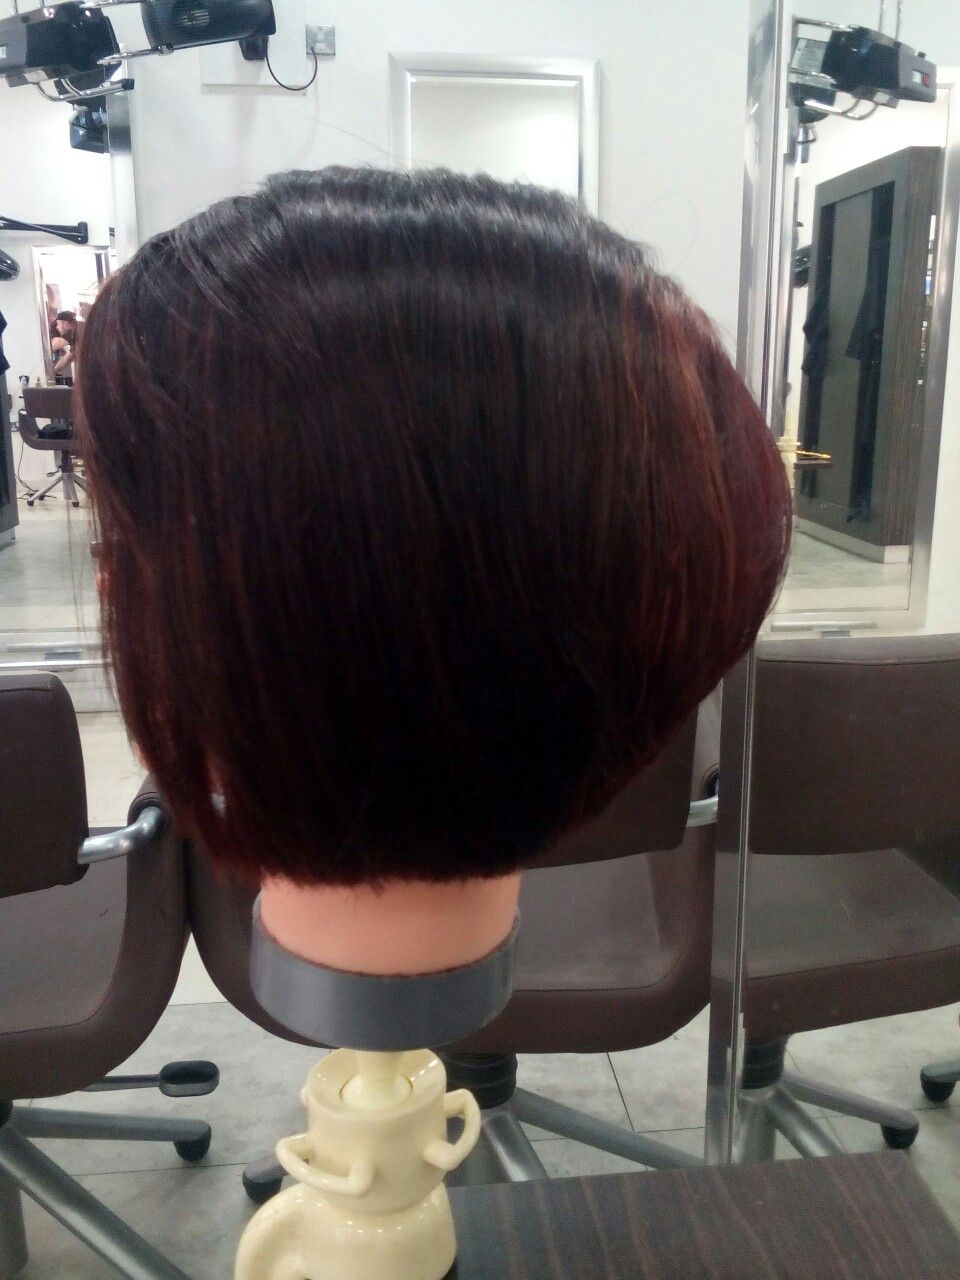 Classic Bob Haircut With Layers At The Back Section And Combination